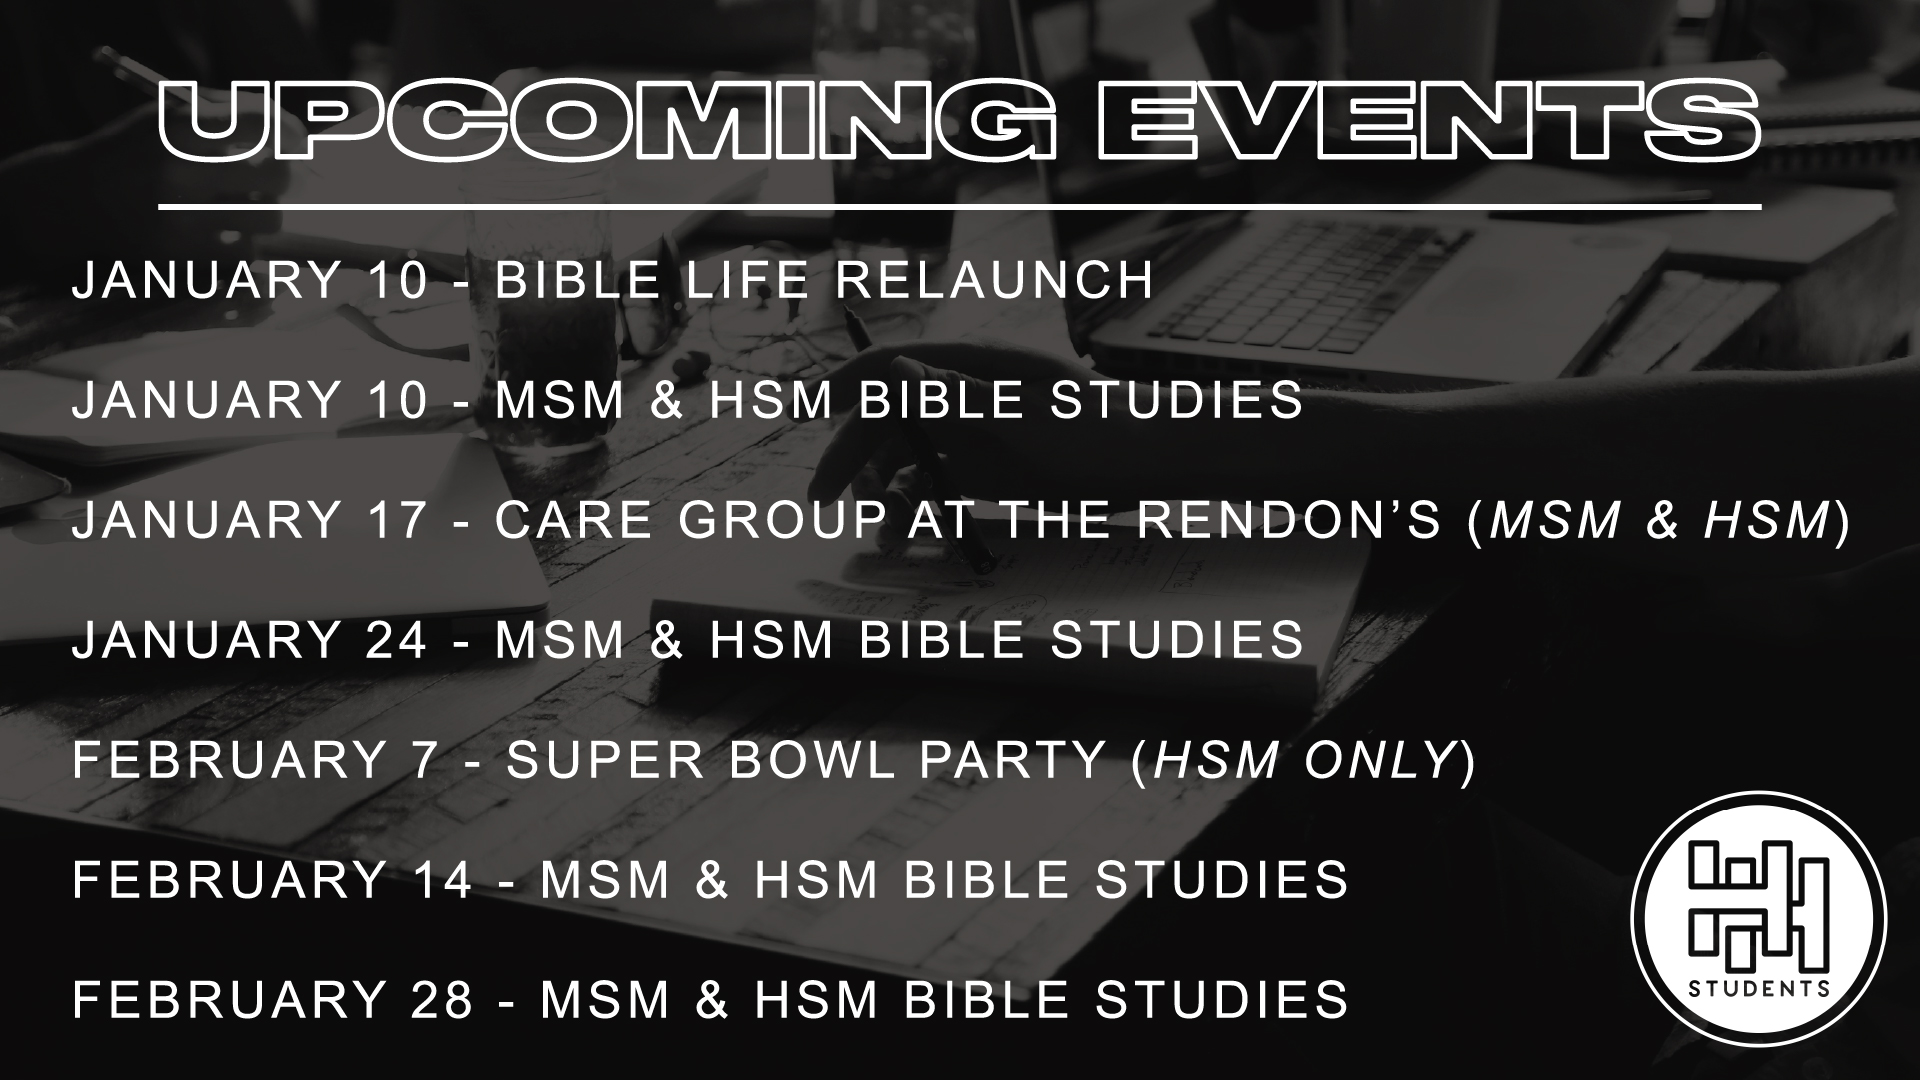 HH STUDENT UPCOMING EVENTS_1a